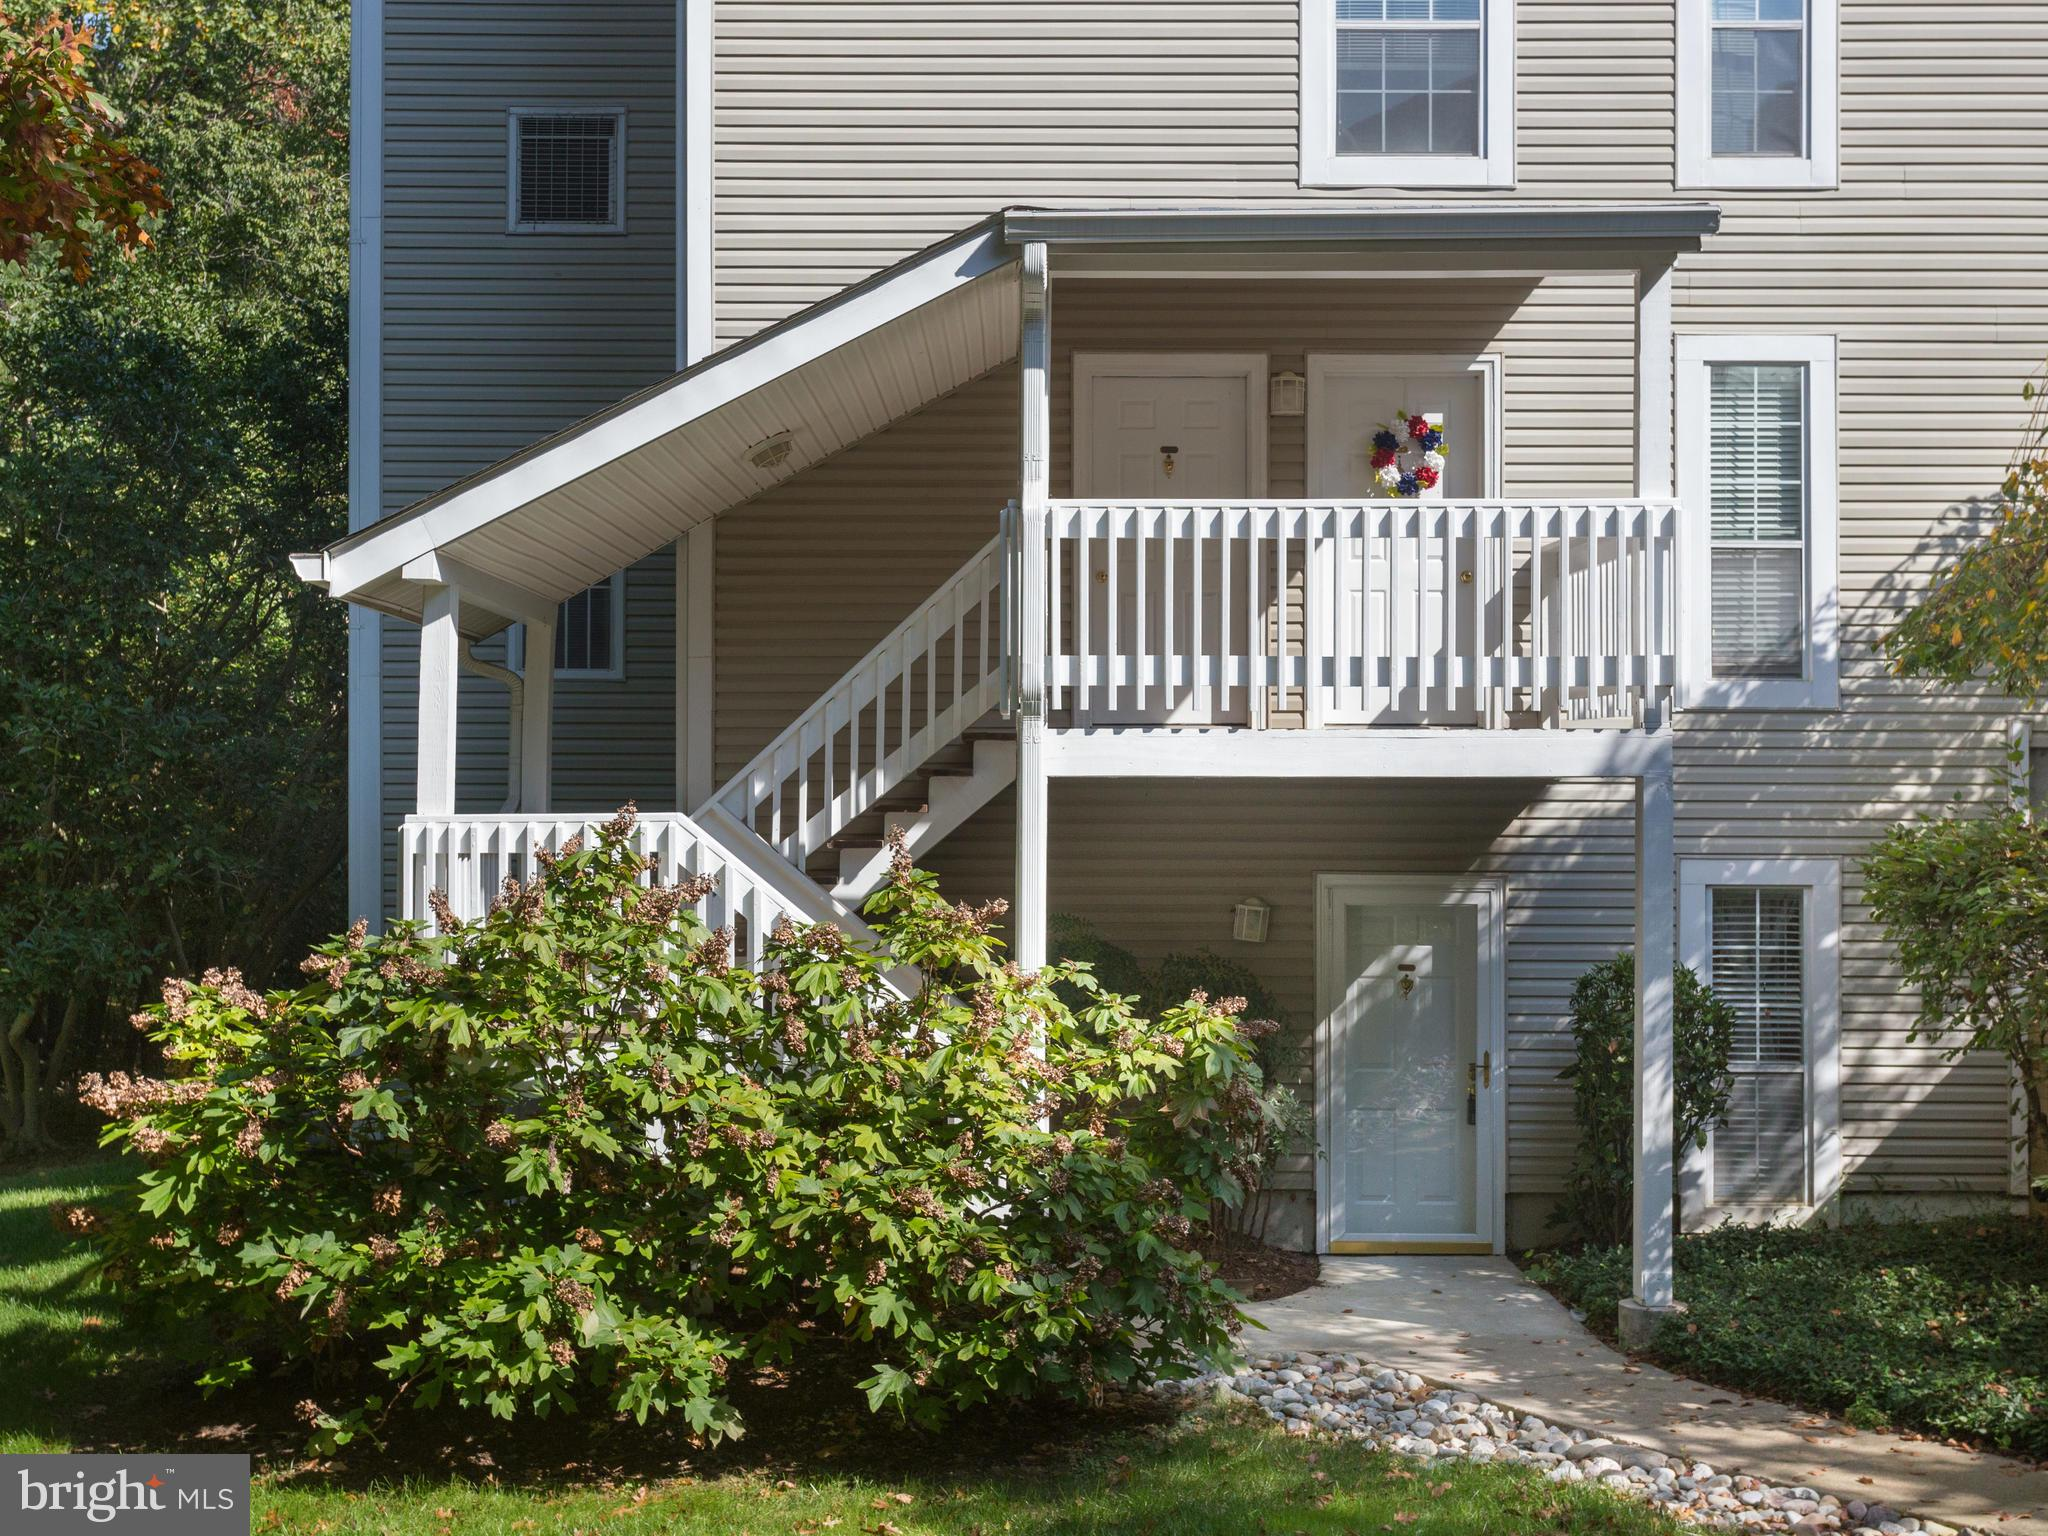 1BR, 1BA with den, ground level condo offers main level living, with one assigned parking space in sought after Vinings. Sparkling hardwood floors in elegant living/dining room combination is perfect for entertaining. Multi-purpose den could serve as an office or guest room. Efficiently designed kitchen offers everything a cook could want. New carpet! Washer and dryer in separate area. Private patio is great for relaxing. Backs to trees. Conveniently located to Prince William Parkway.